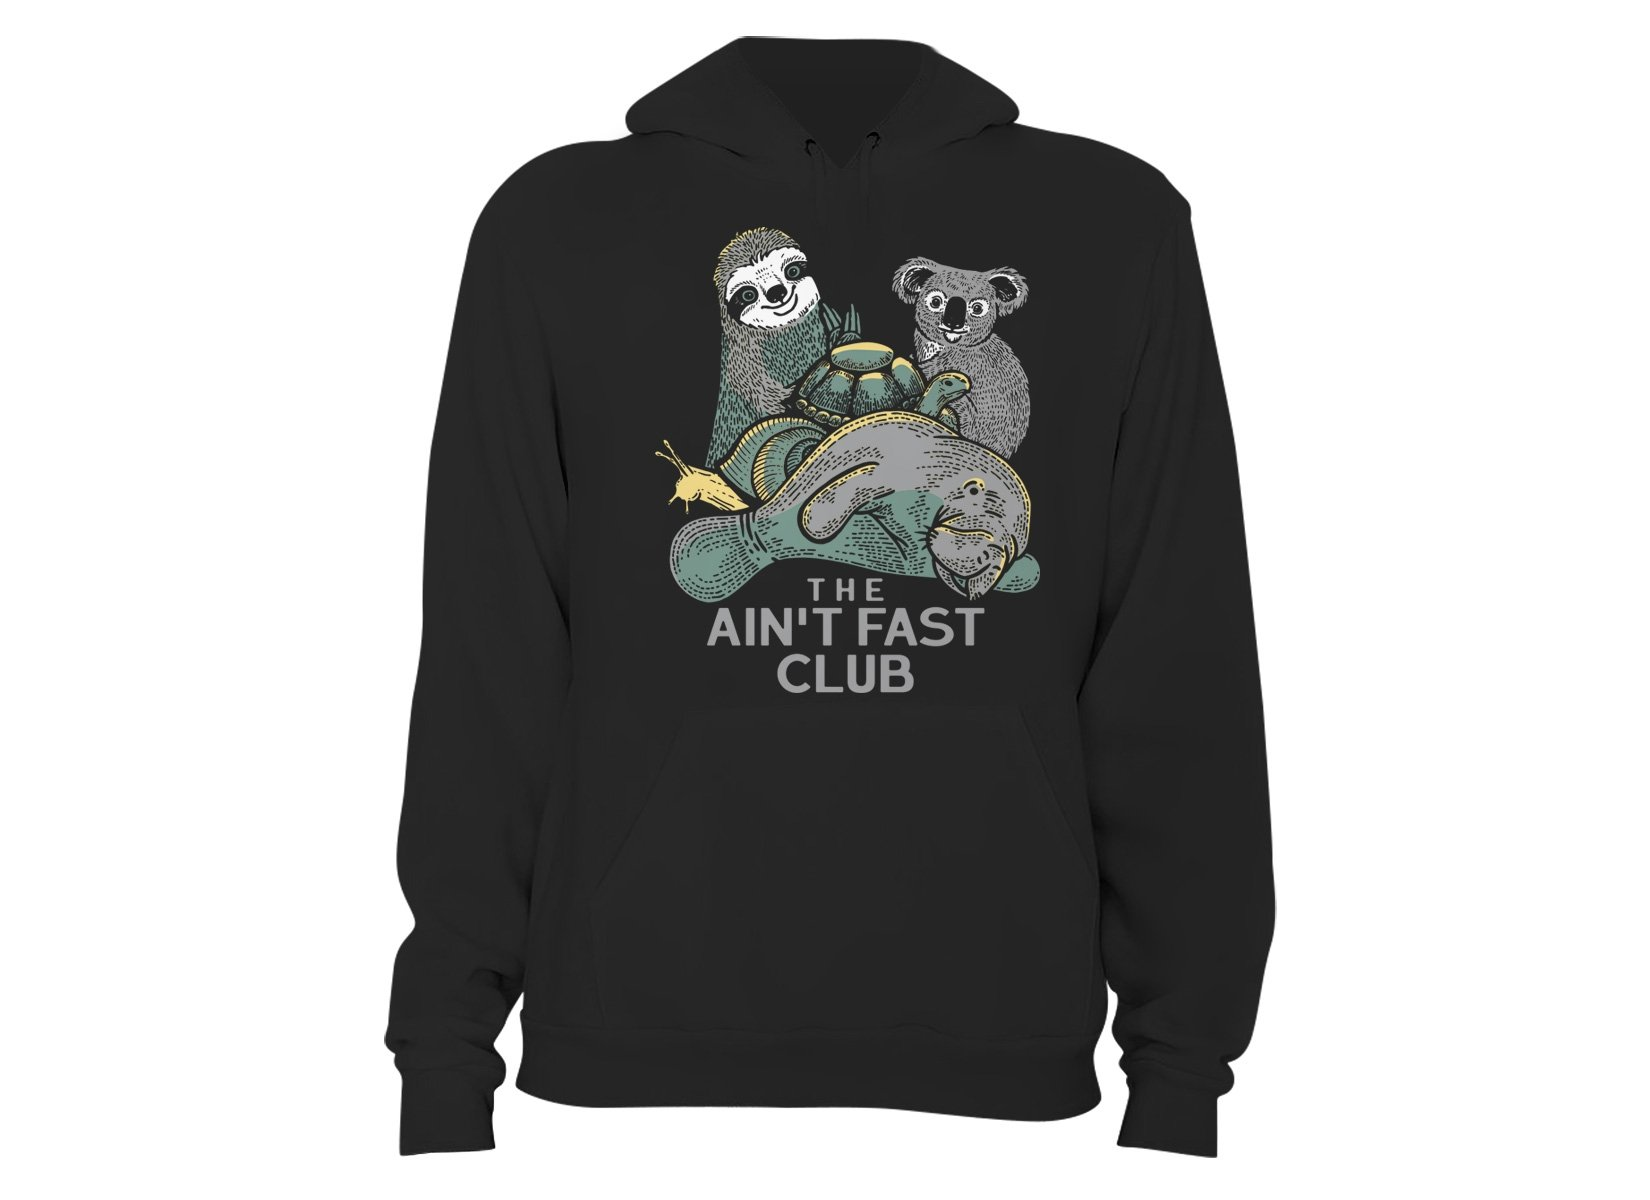 The Ain't Fast Club on Hoodie